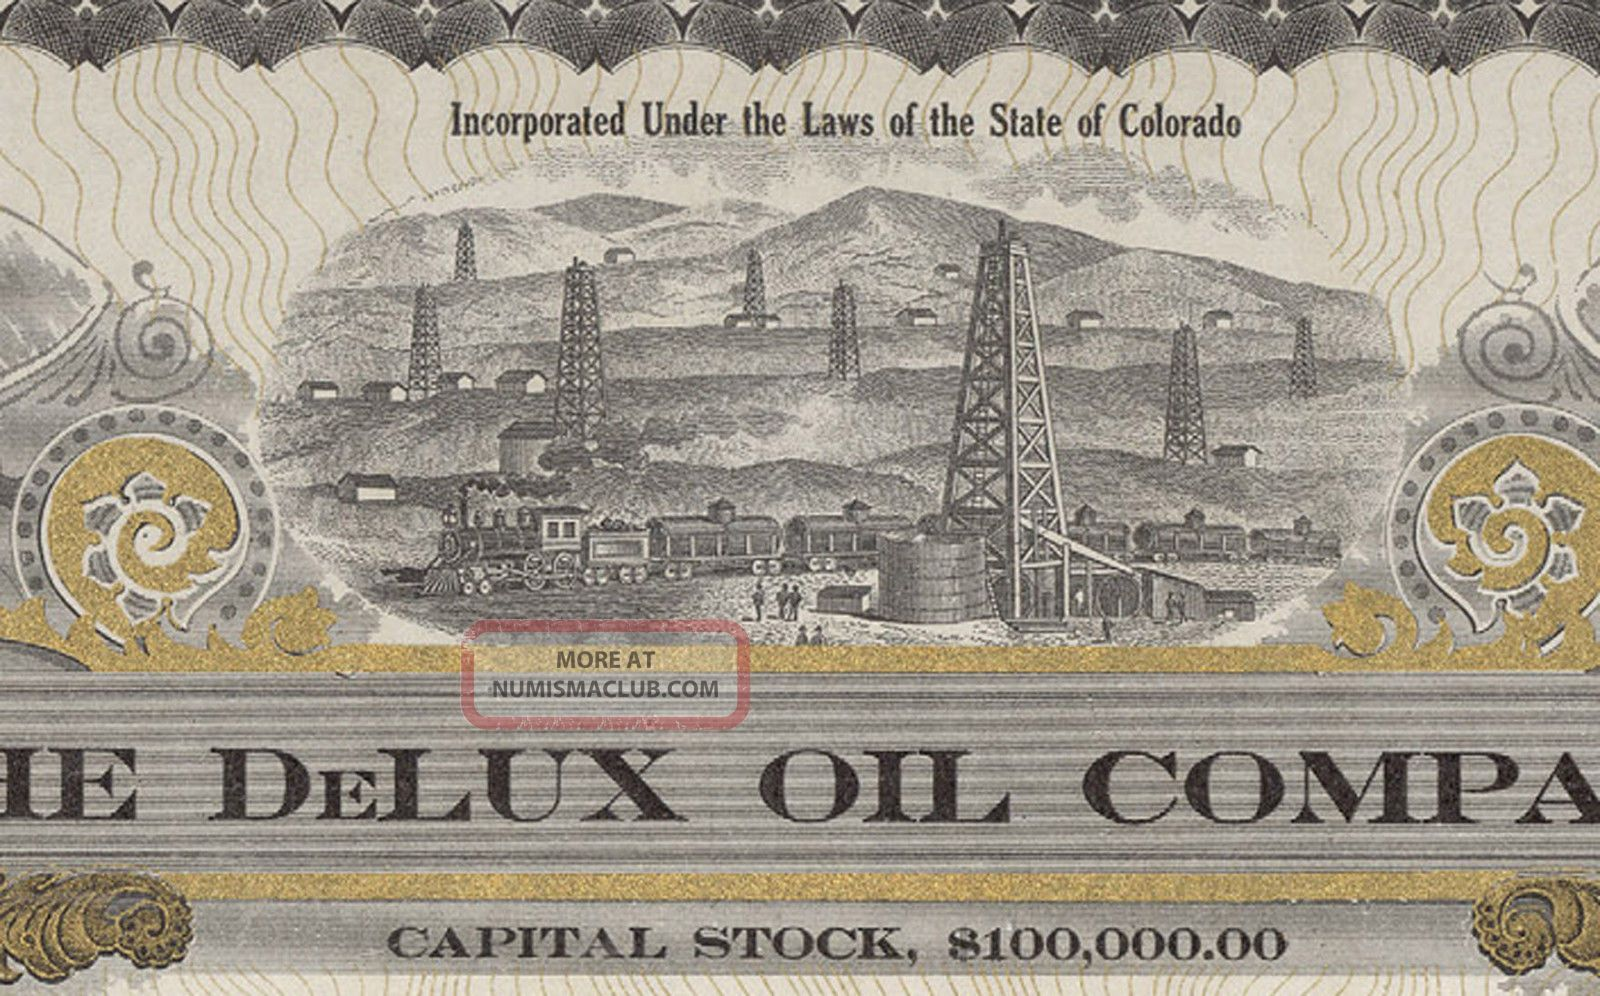 Authentic Old Delux Oil Co Of Colo Stock Certificate,  10c Share Stocks & Bonds, Scripophily photo